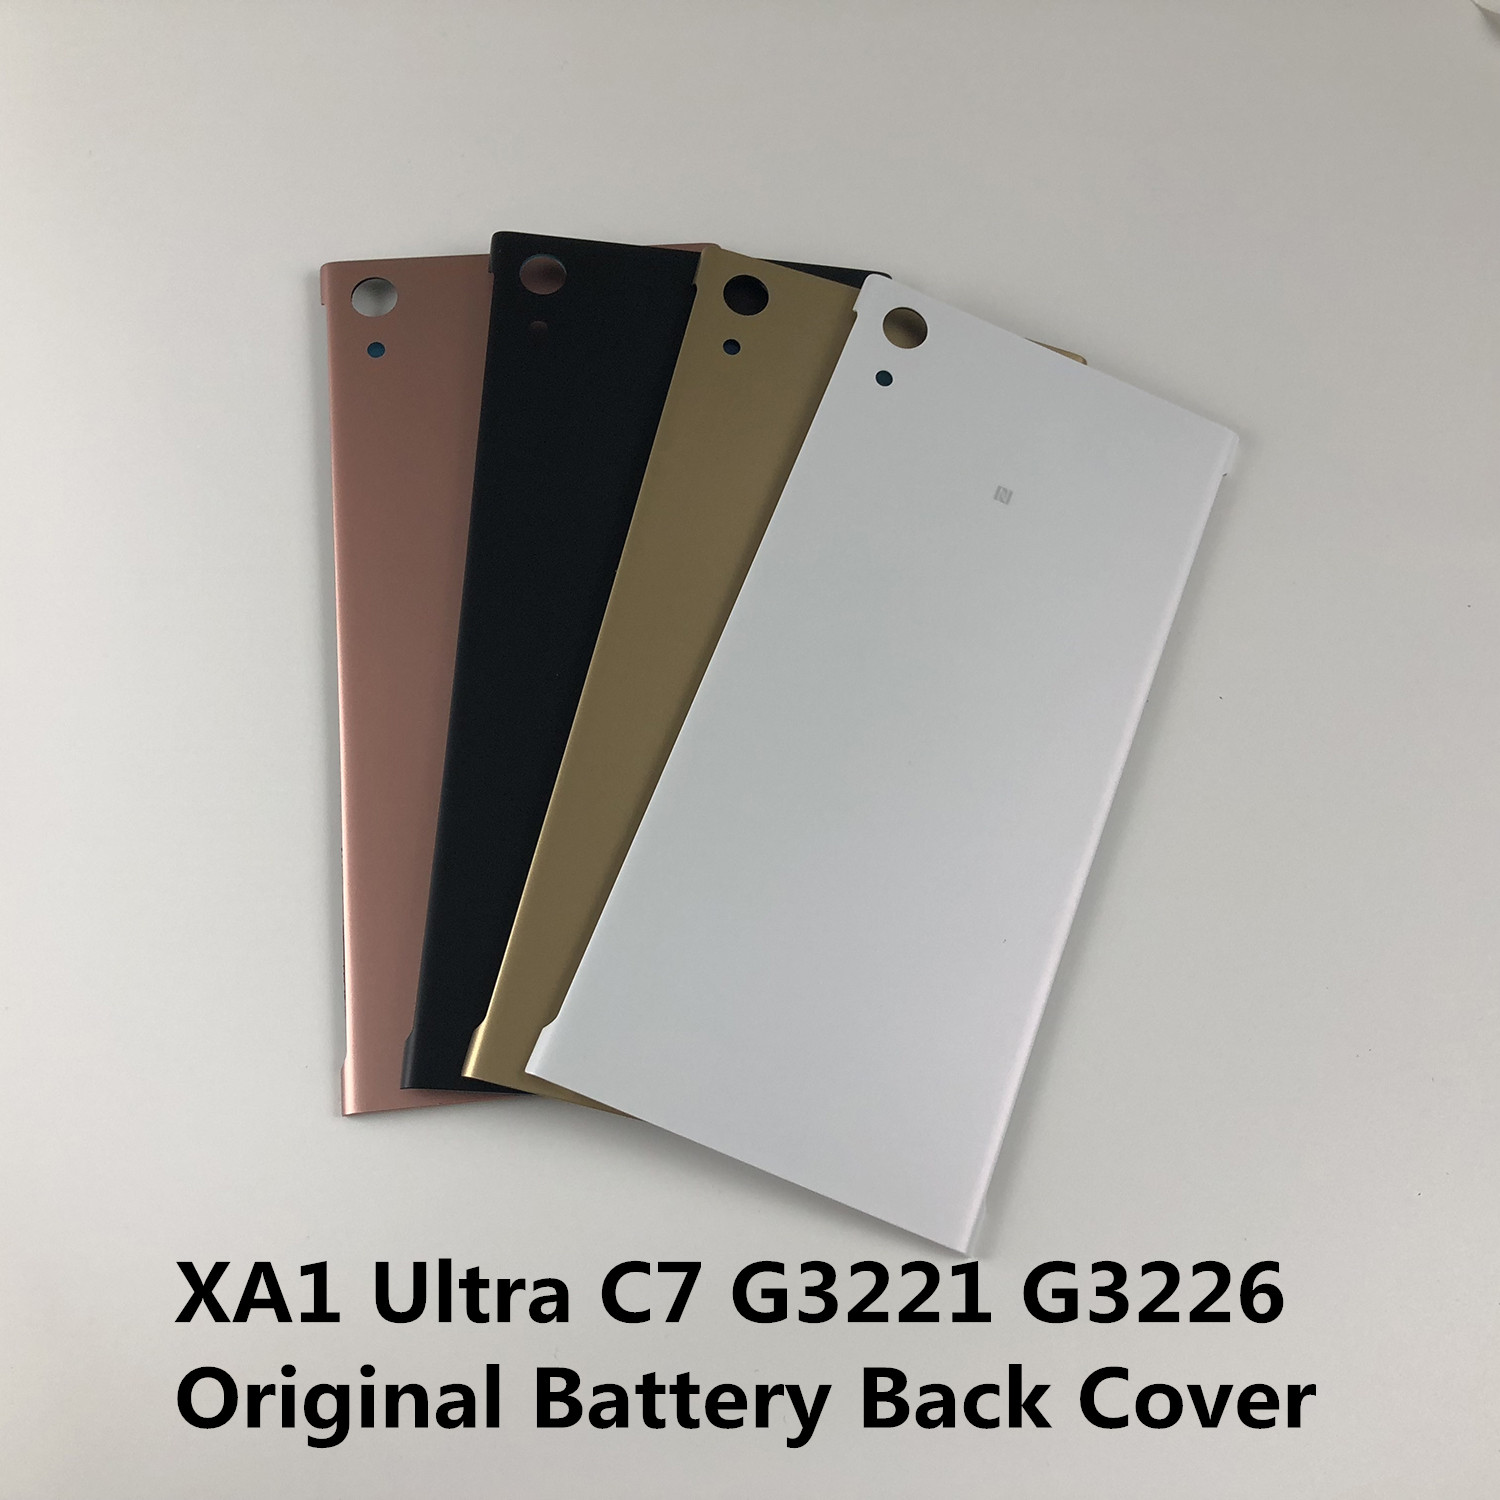 Original For SONY XPERIA XA1 Ultra C7 G3221 G3226 Housing Battery Back Cover With Logo+Sticker Adhesive